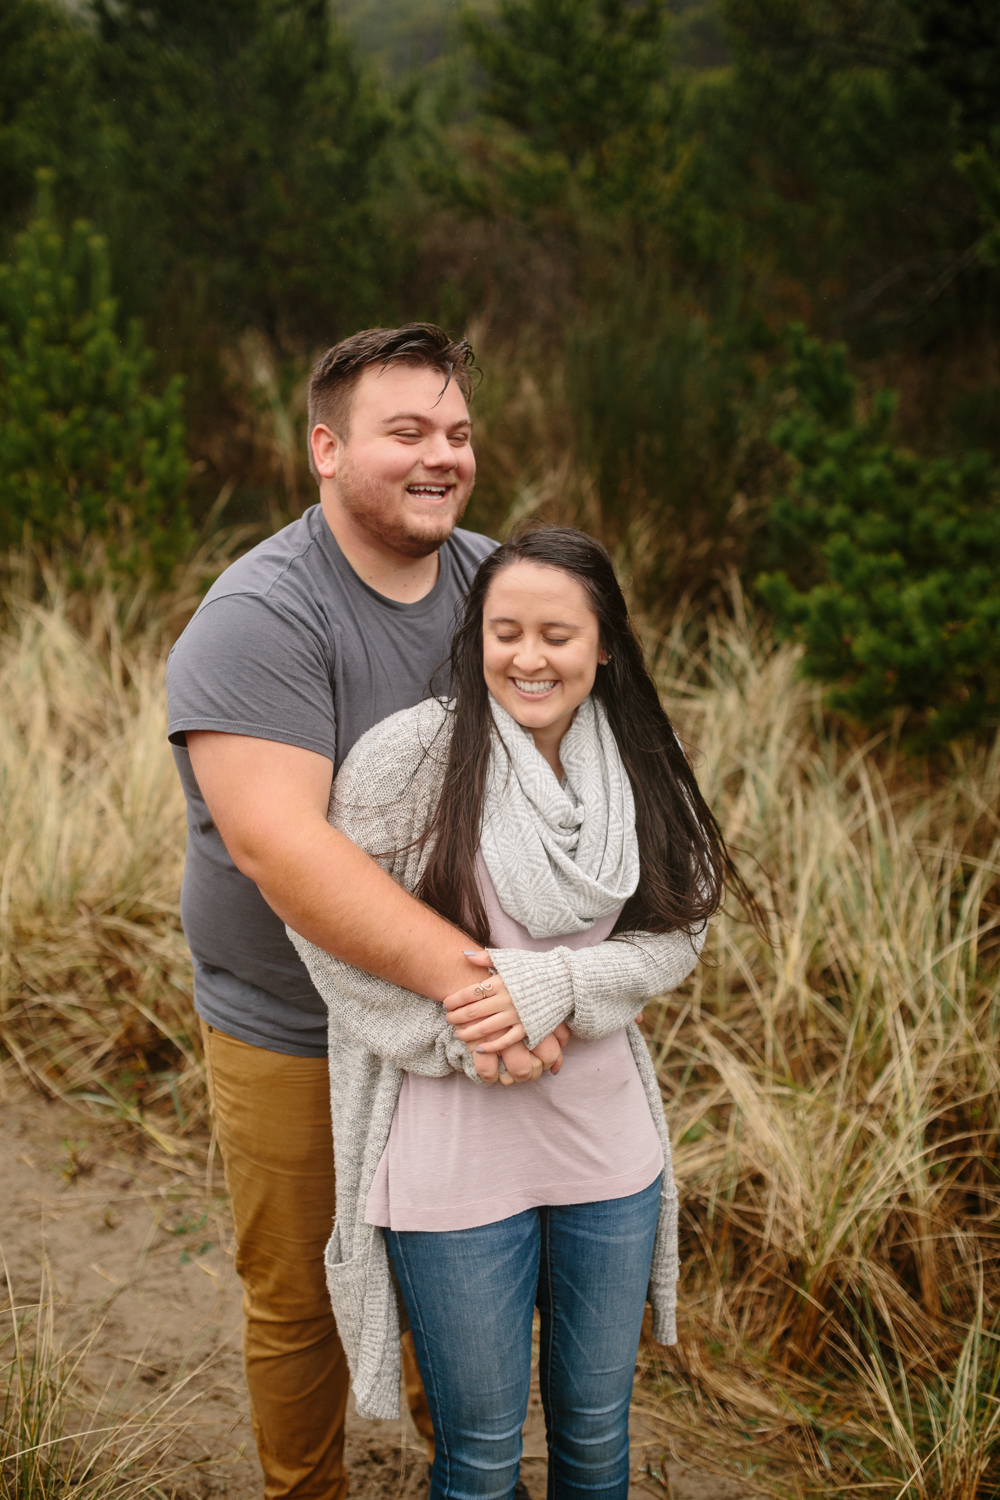 A young couple laughing during their photo shoot